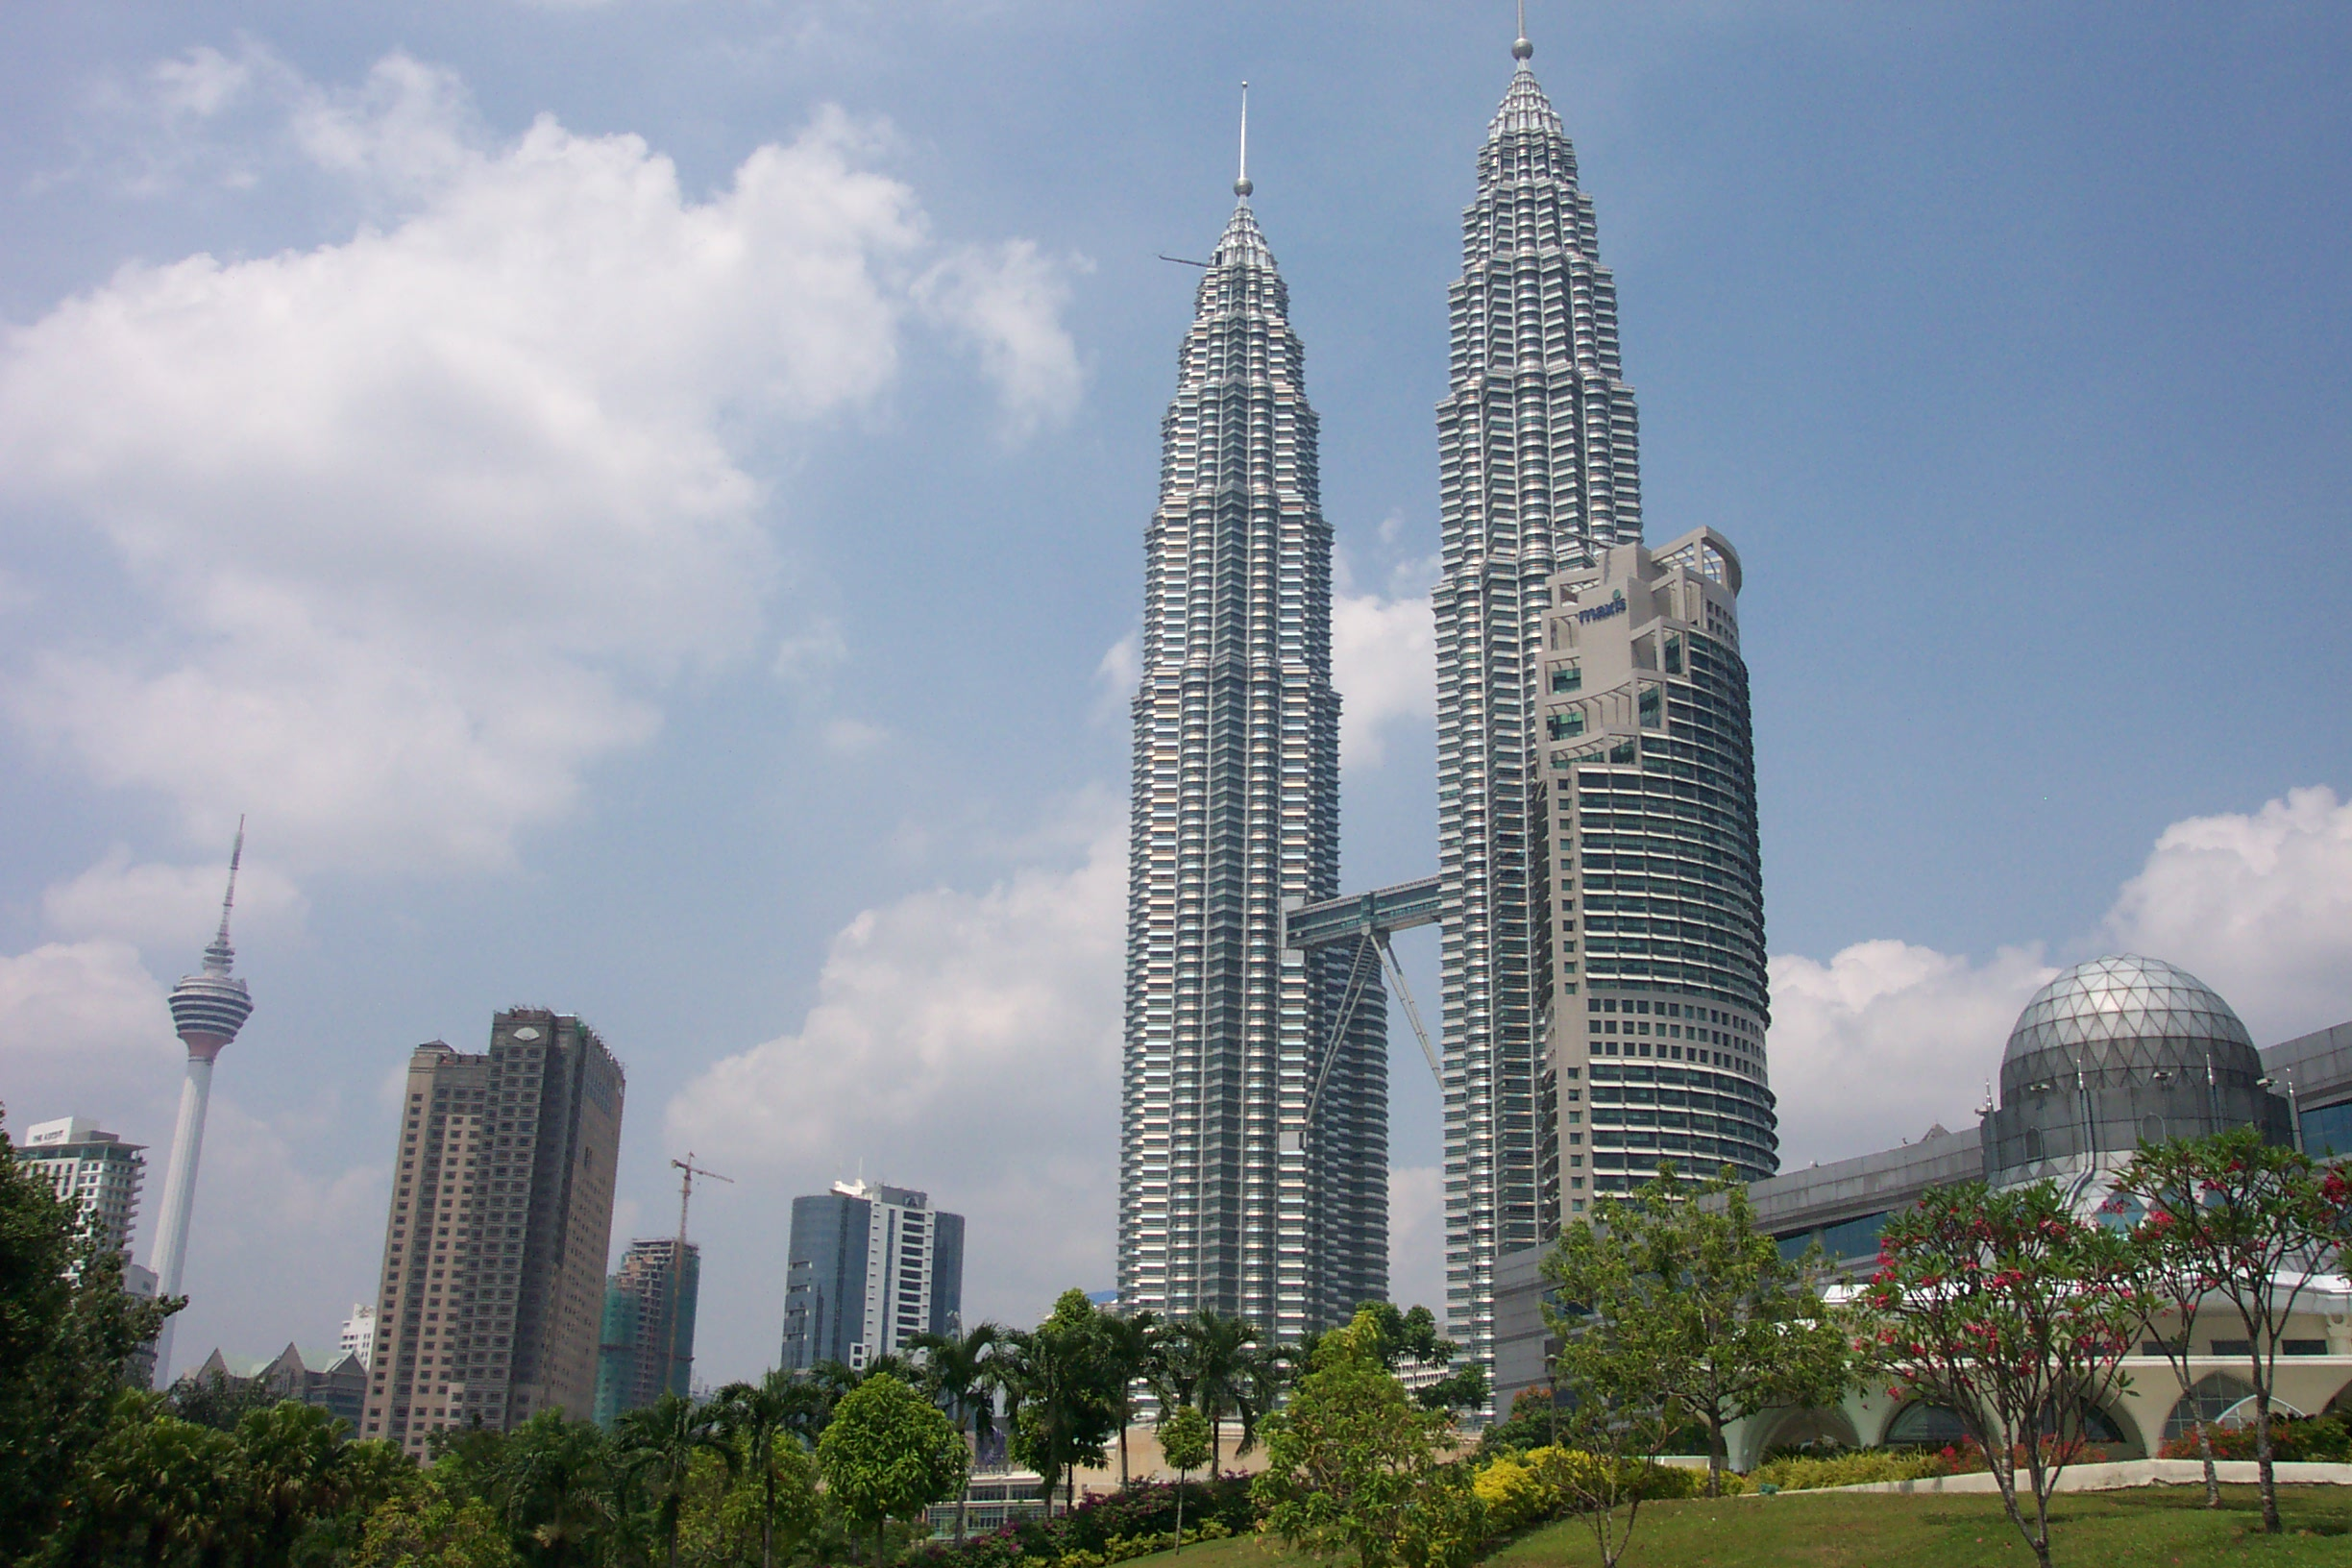 petronas-towers-1229069